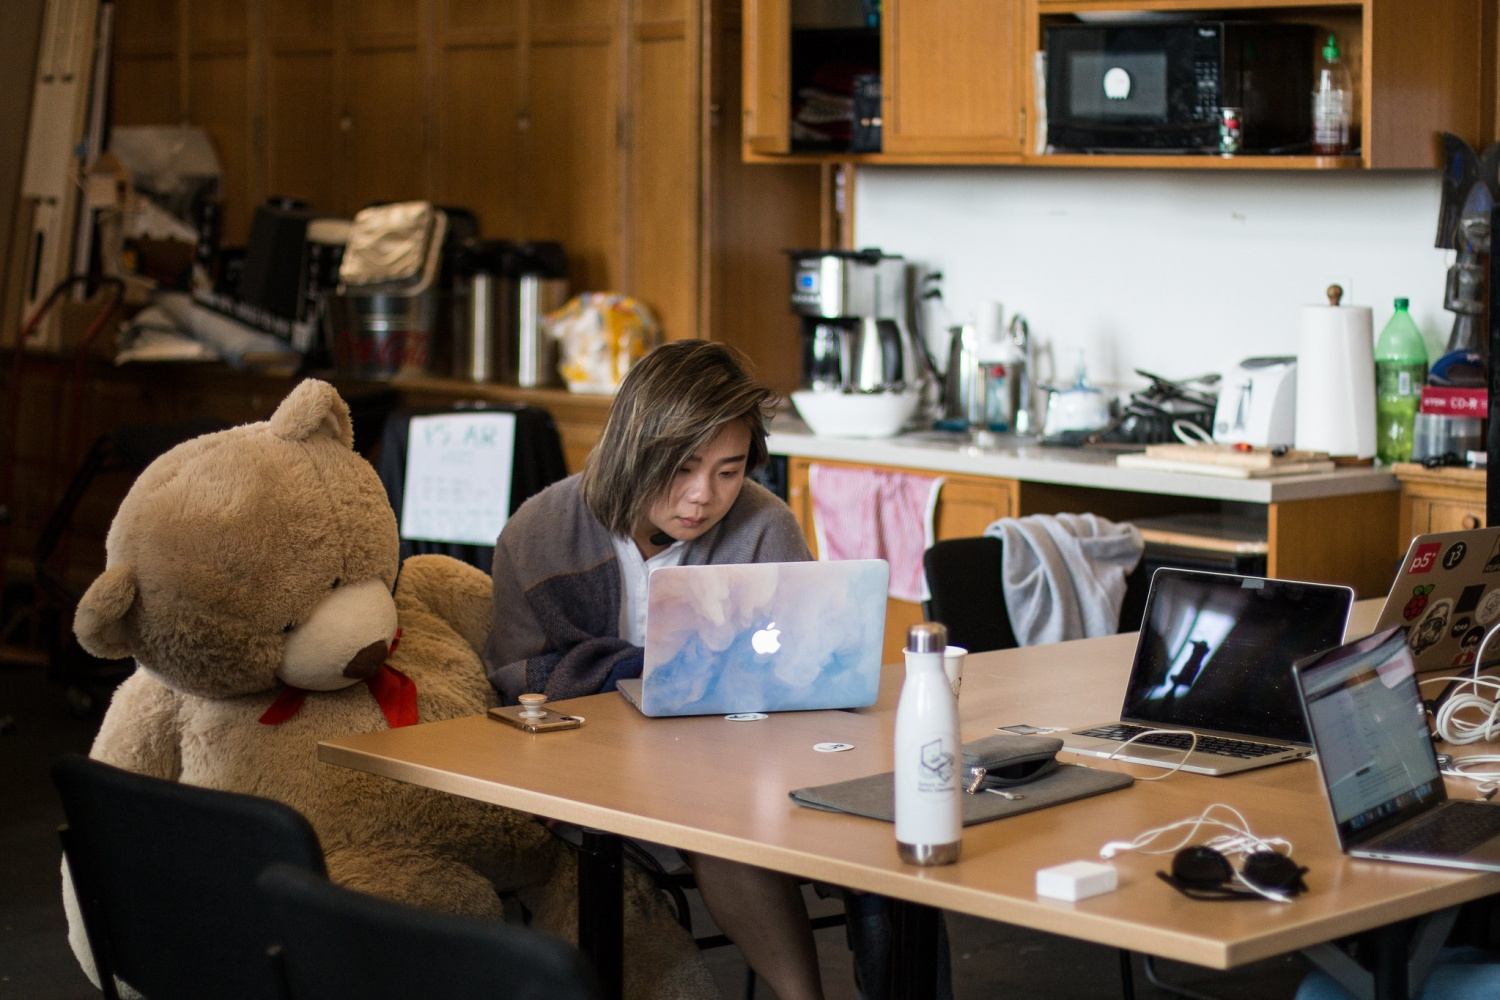 Woman sitting next to a lifesize teddy bear works on her laptop